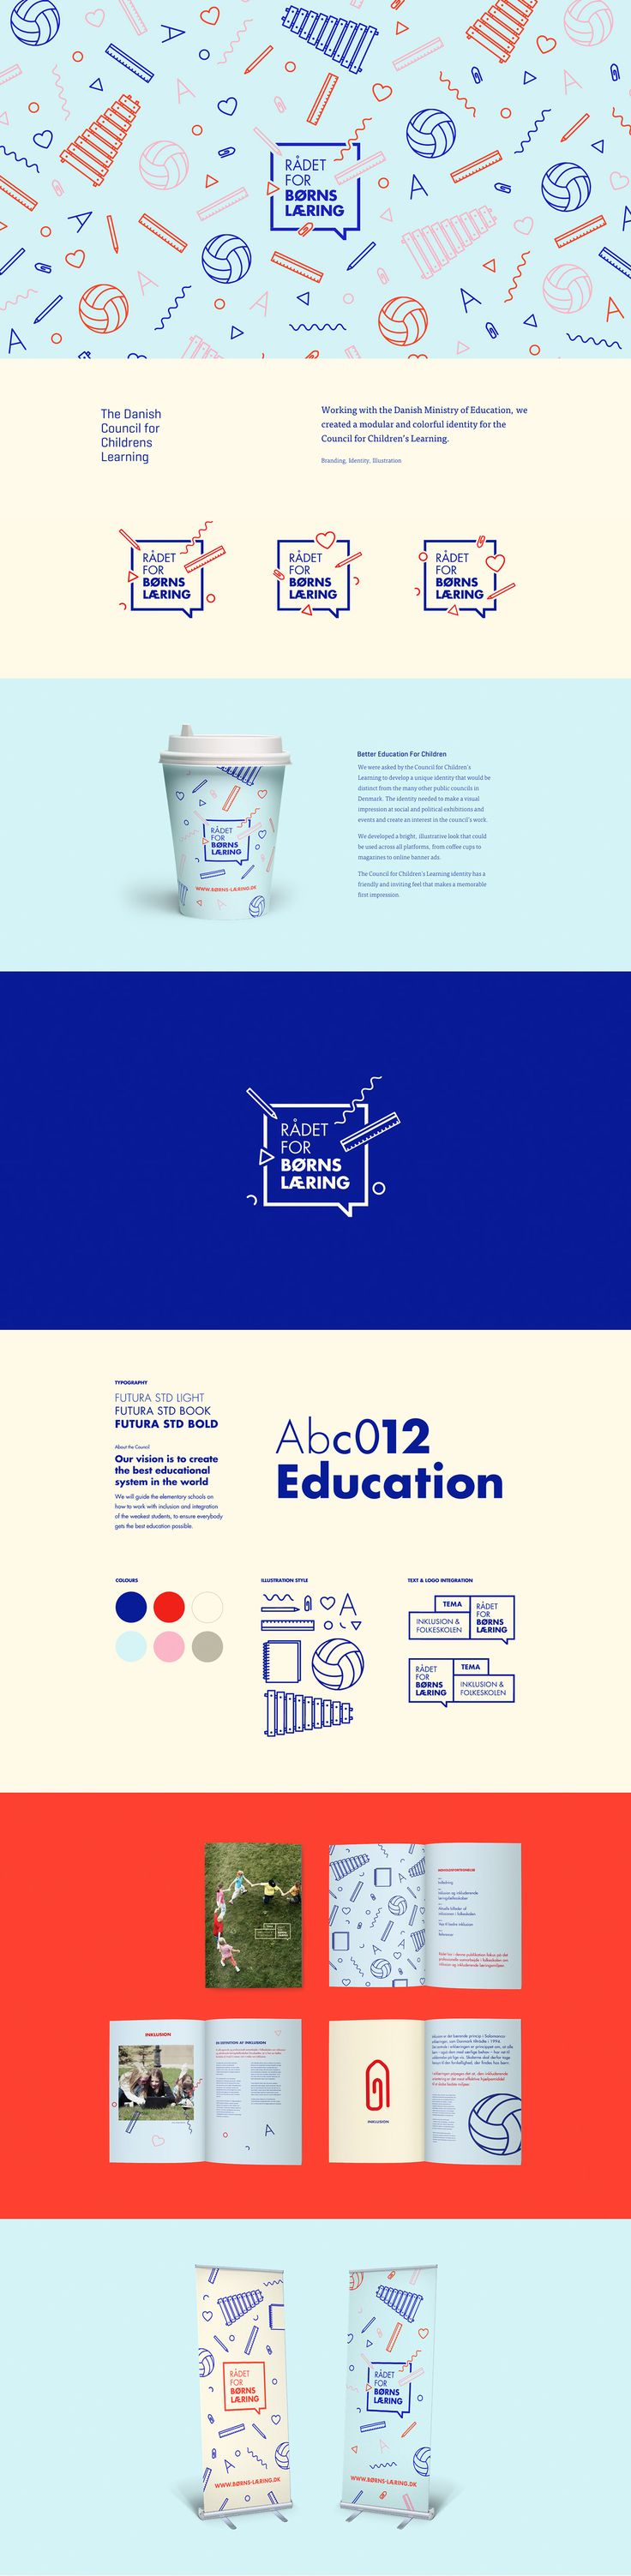 The Danish Council for Childrens Learning on Behance